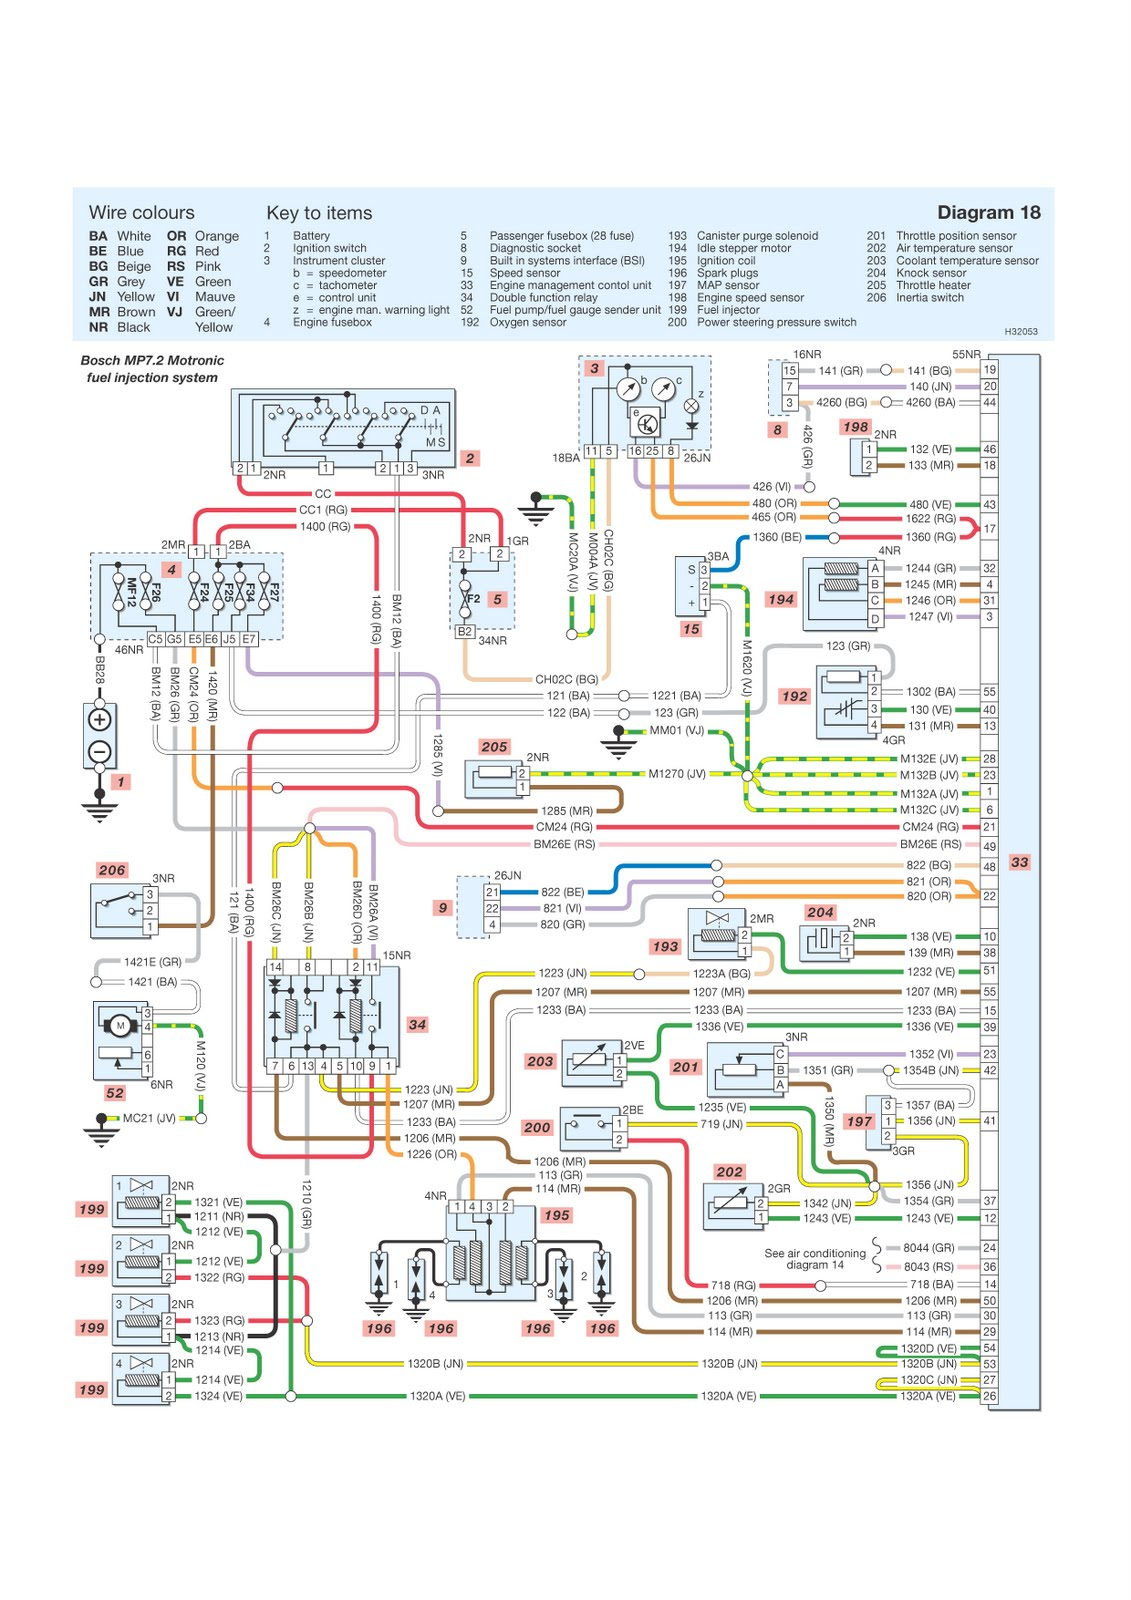 peugeot bsi wiring diagram wiring diagram technic peugeot 206 wiring pdf wiring diagram today [ 1131 x 1600 Pixel ]